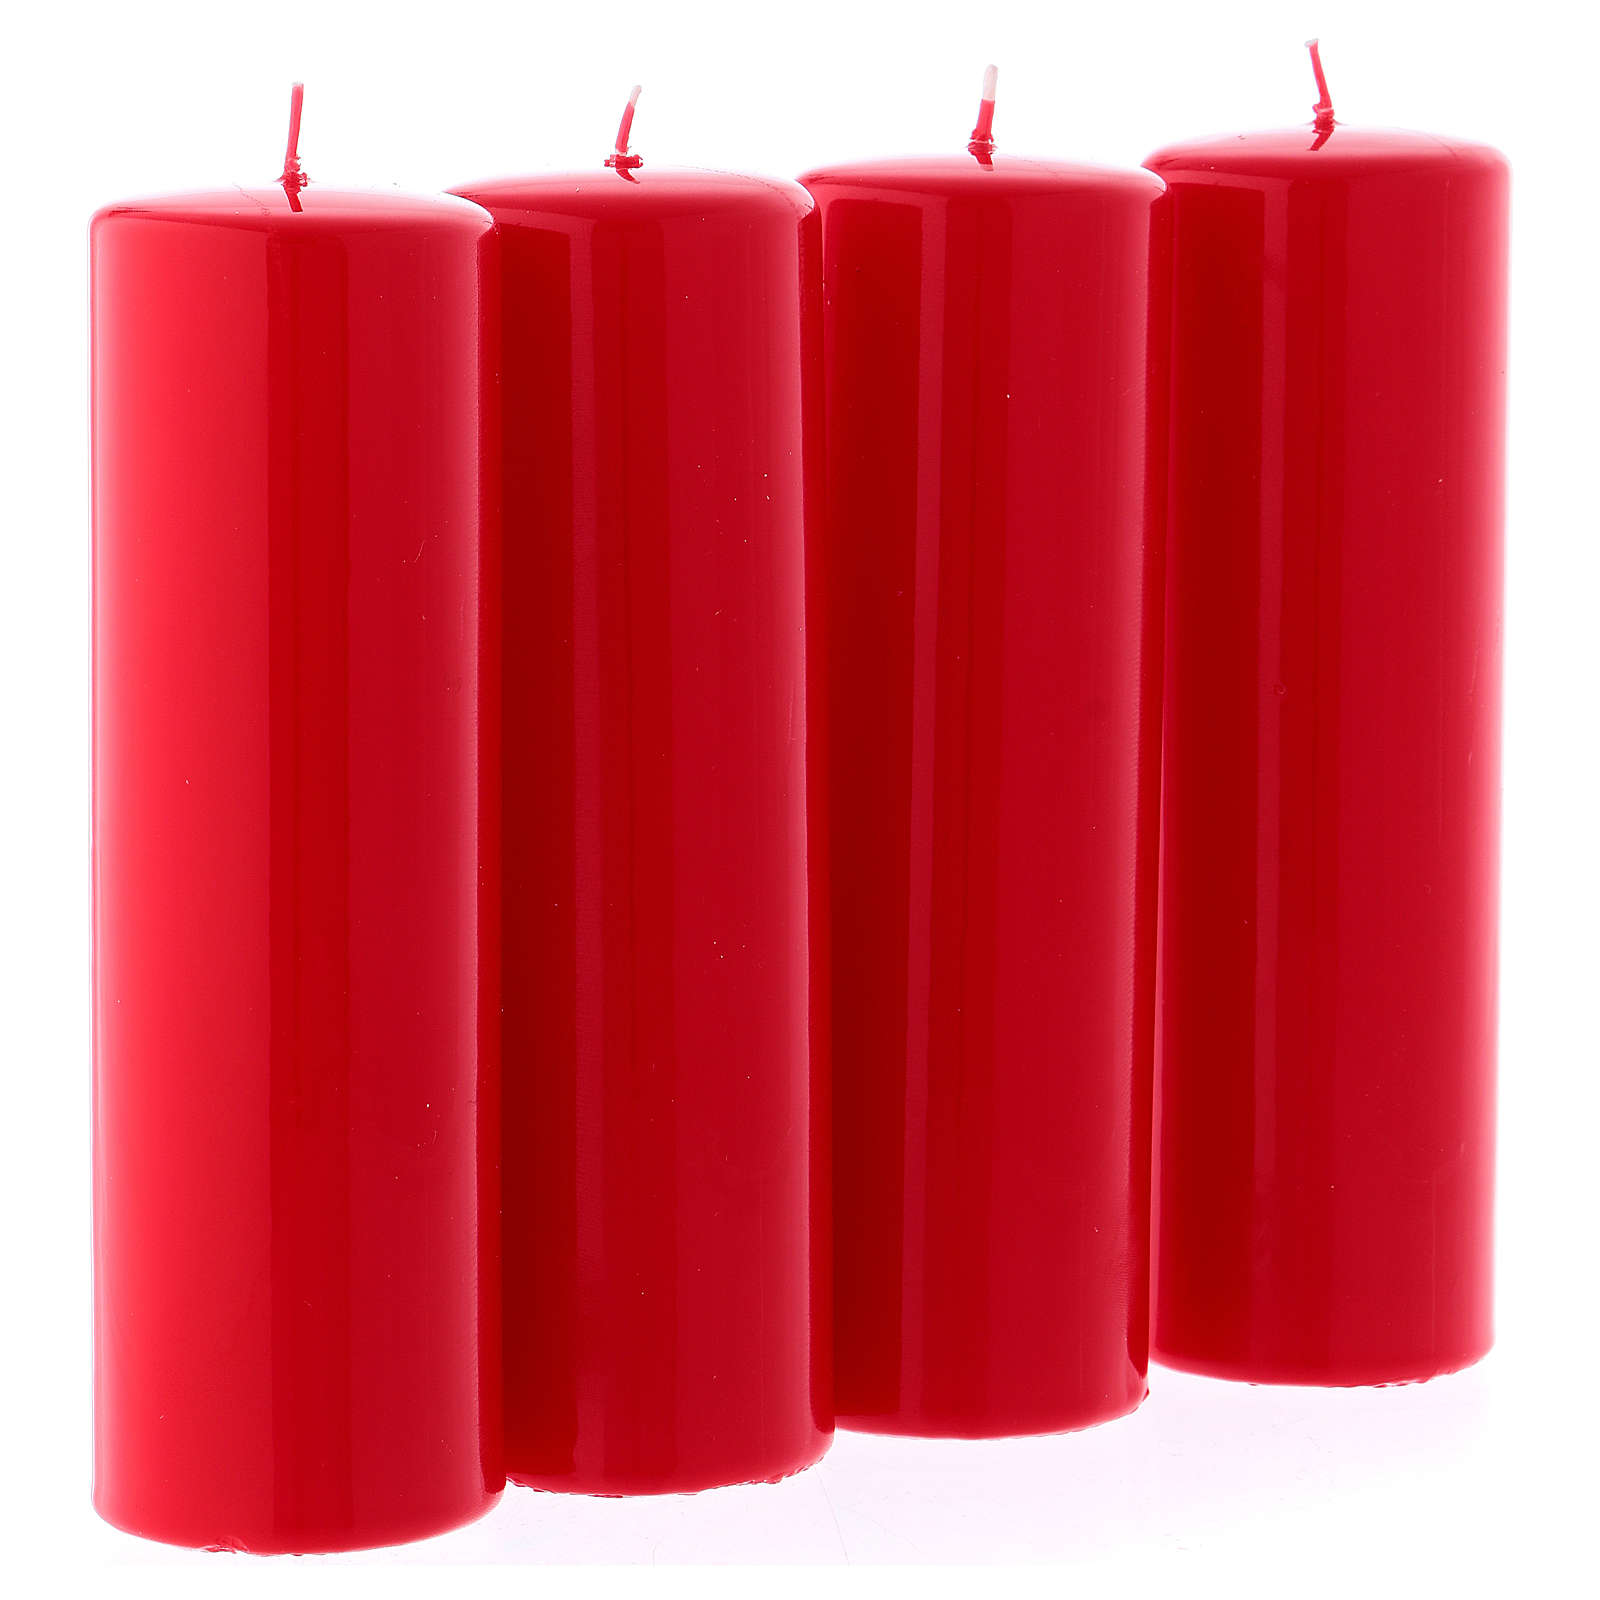 Red Advent candles, glossy 6x20 cm 4 pcs 3